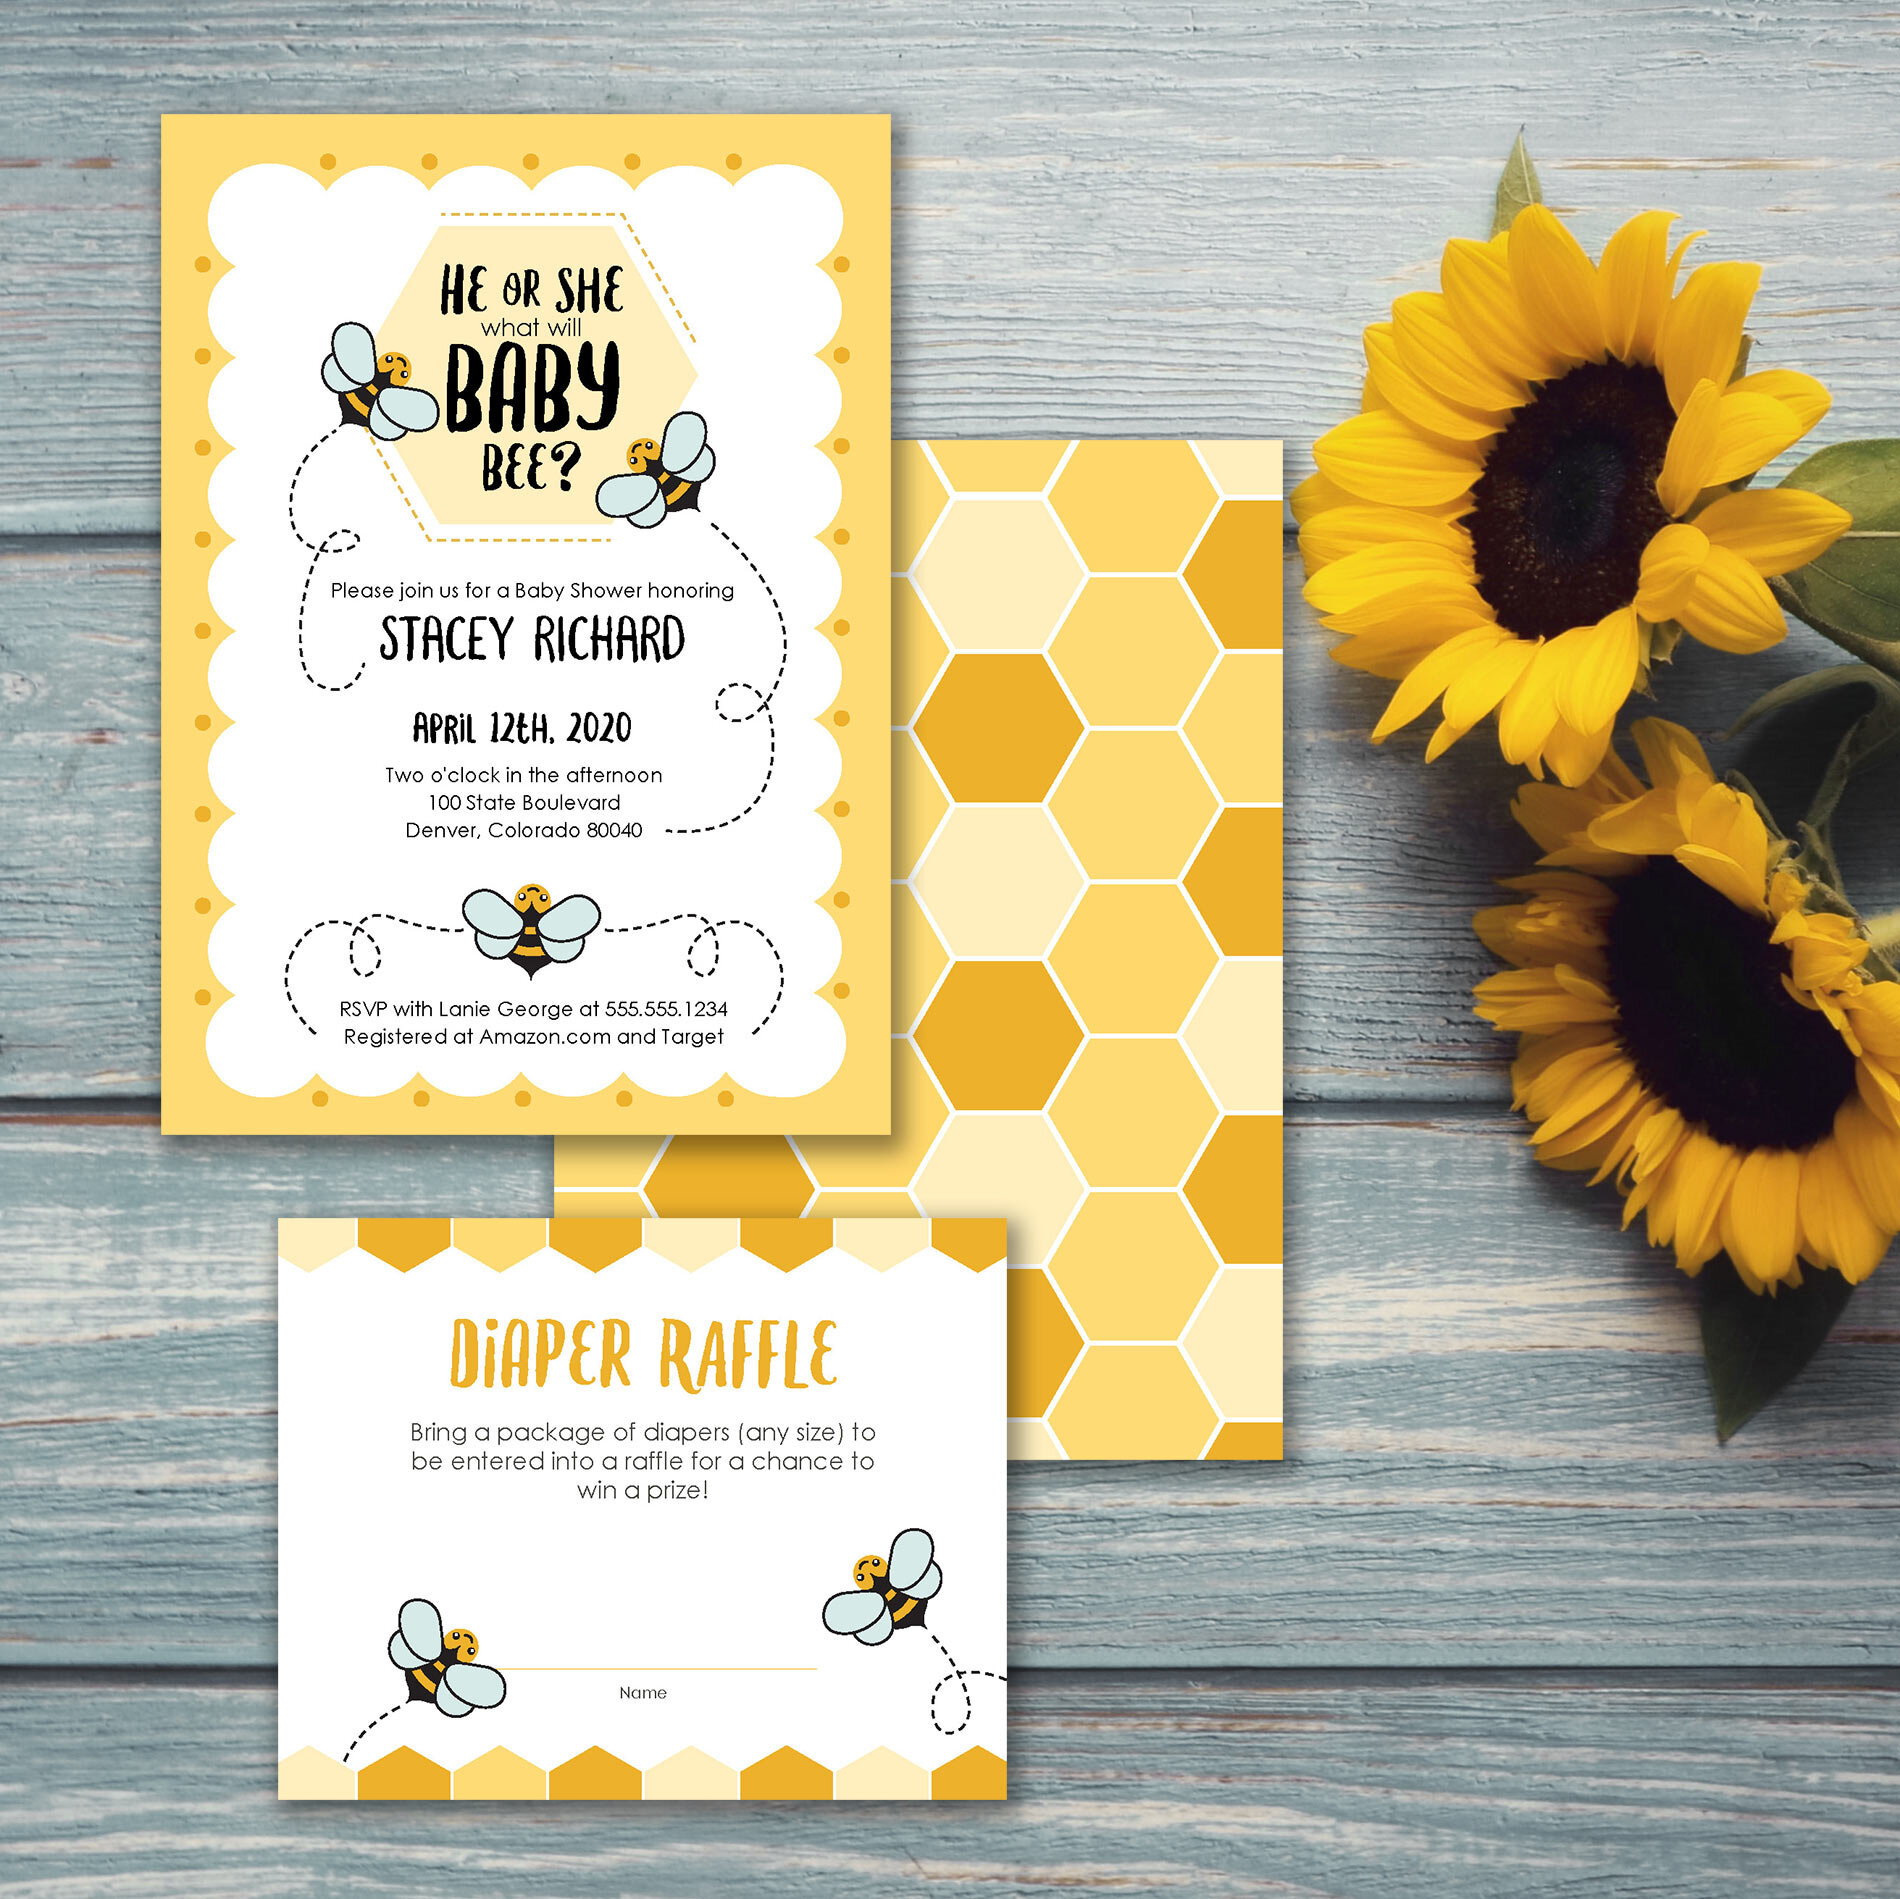 He Or She What will baby bee? Bee themed gender reveal or gender neutral baby shower. Getting ready for a new baby to appear in your life is just as important the first time around as it is for baby 2, 3 or more.